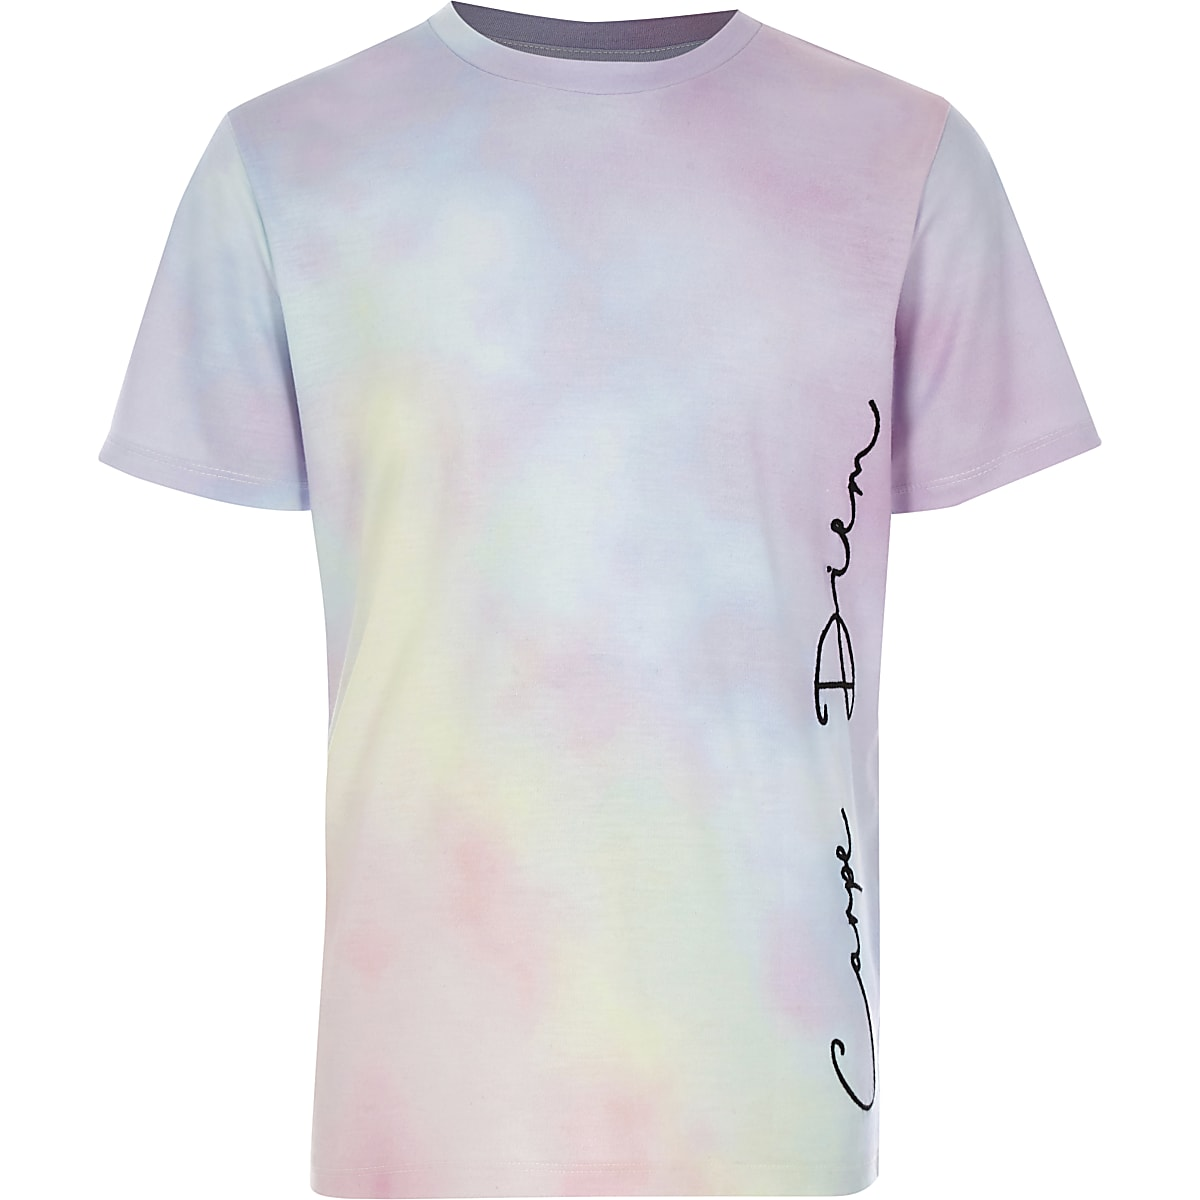 Boys pink 'Carpe diem' T-shirt